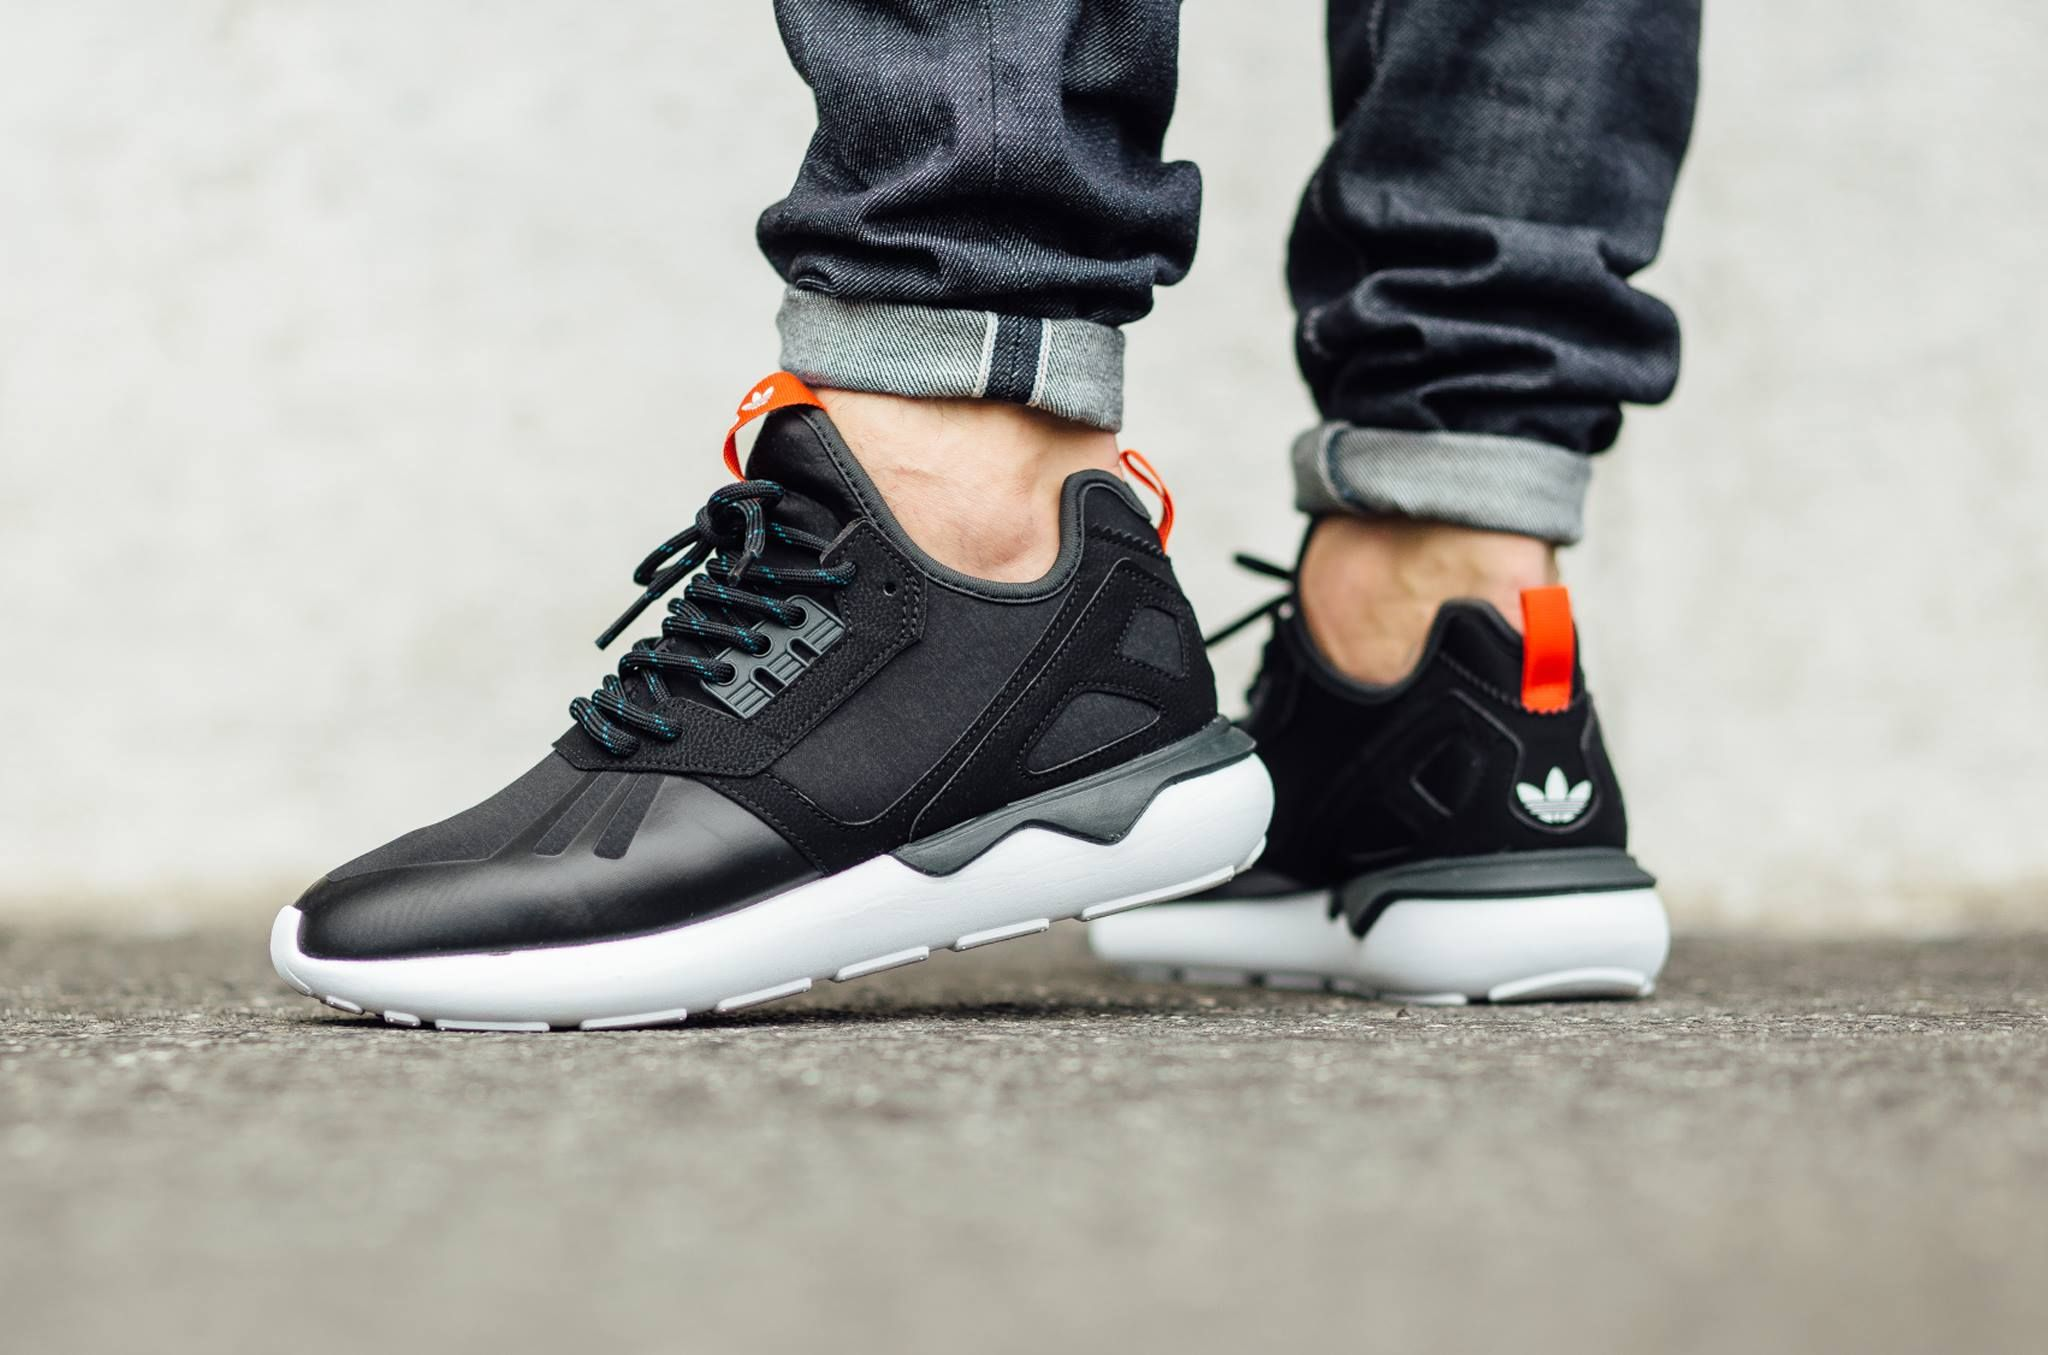 Adidas Women Tubular regular adidas Ireland